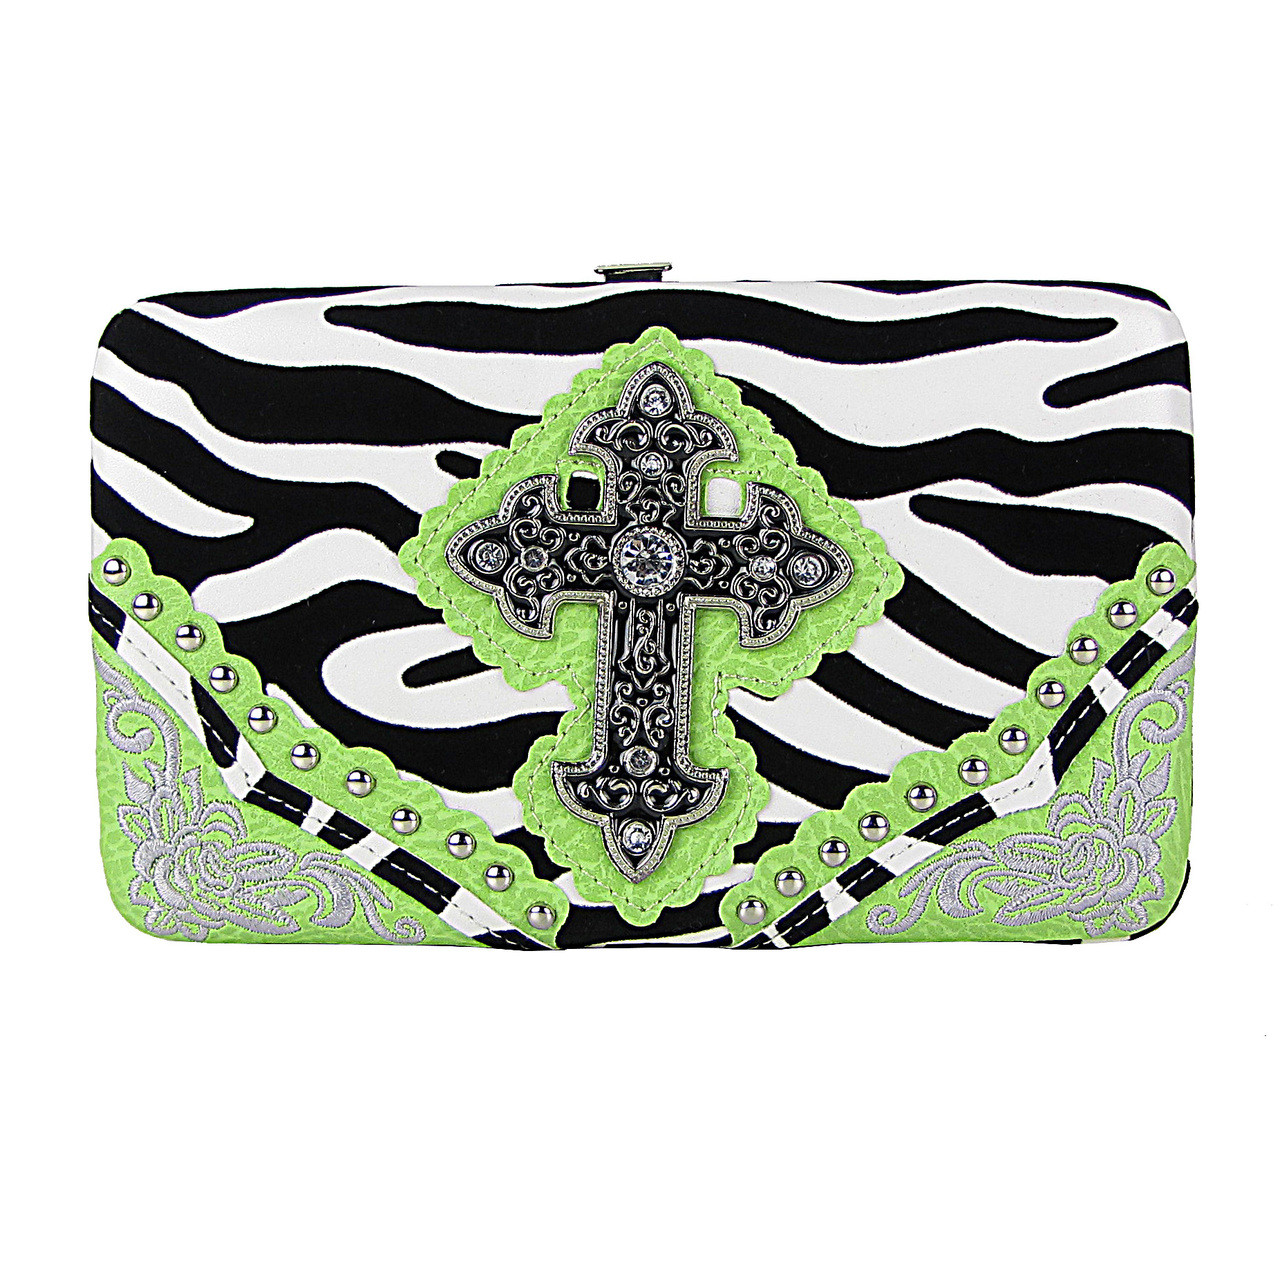 GREEN ZEBRA STITCHED CROSS FLAT THICK WALLET FW2-0472GRN